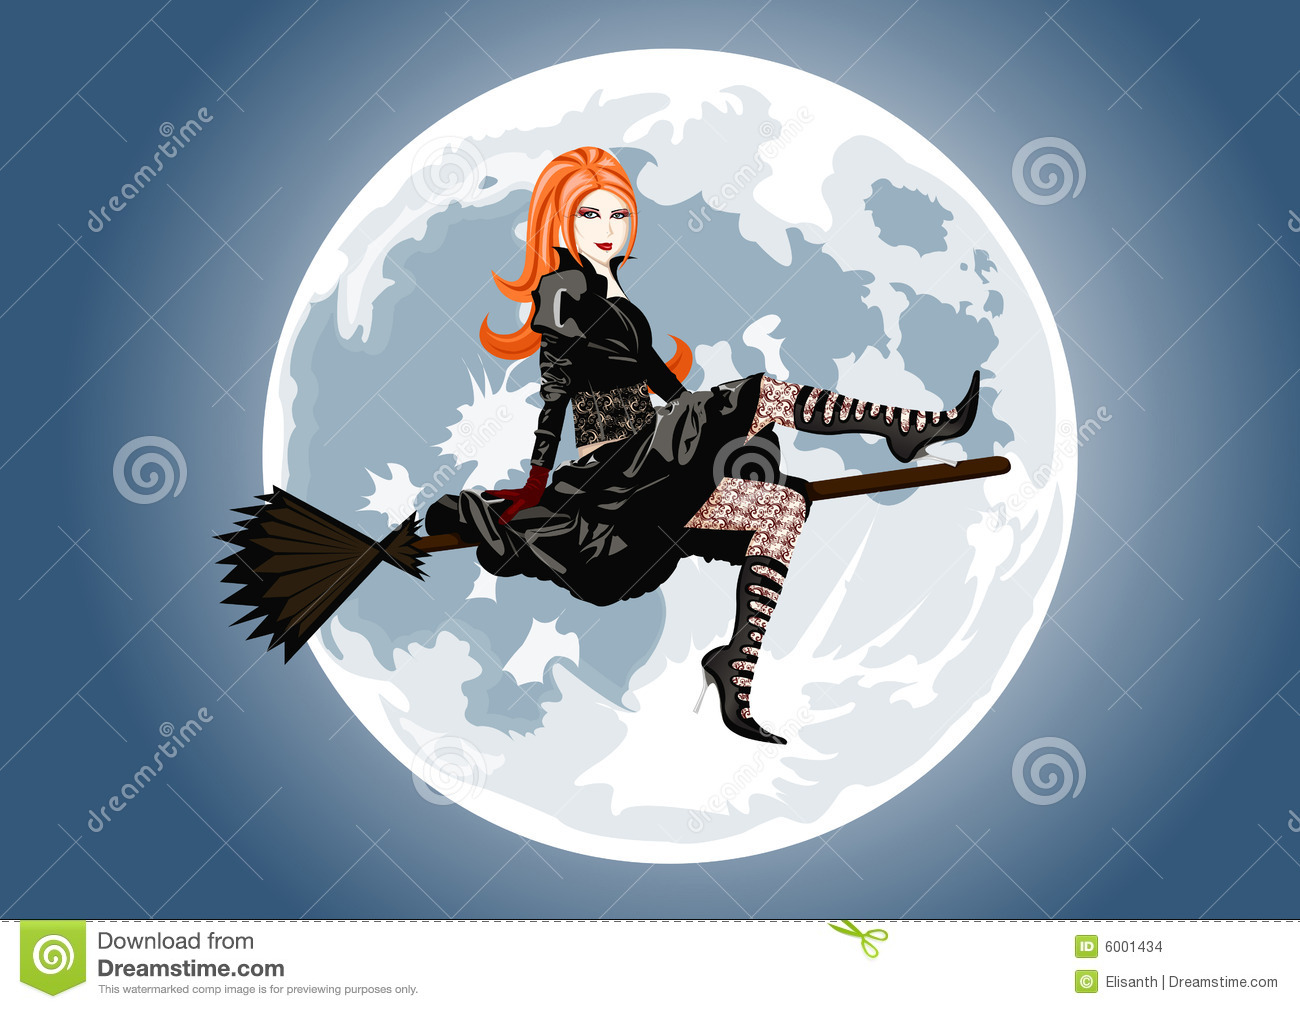 Full Moon Clip Art Black And White Beautiful Witch Sitting On Broom Stock Images - Image: 6001434